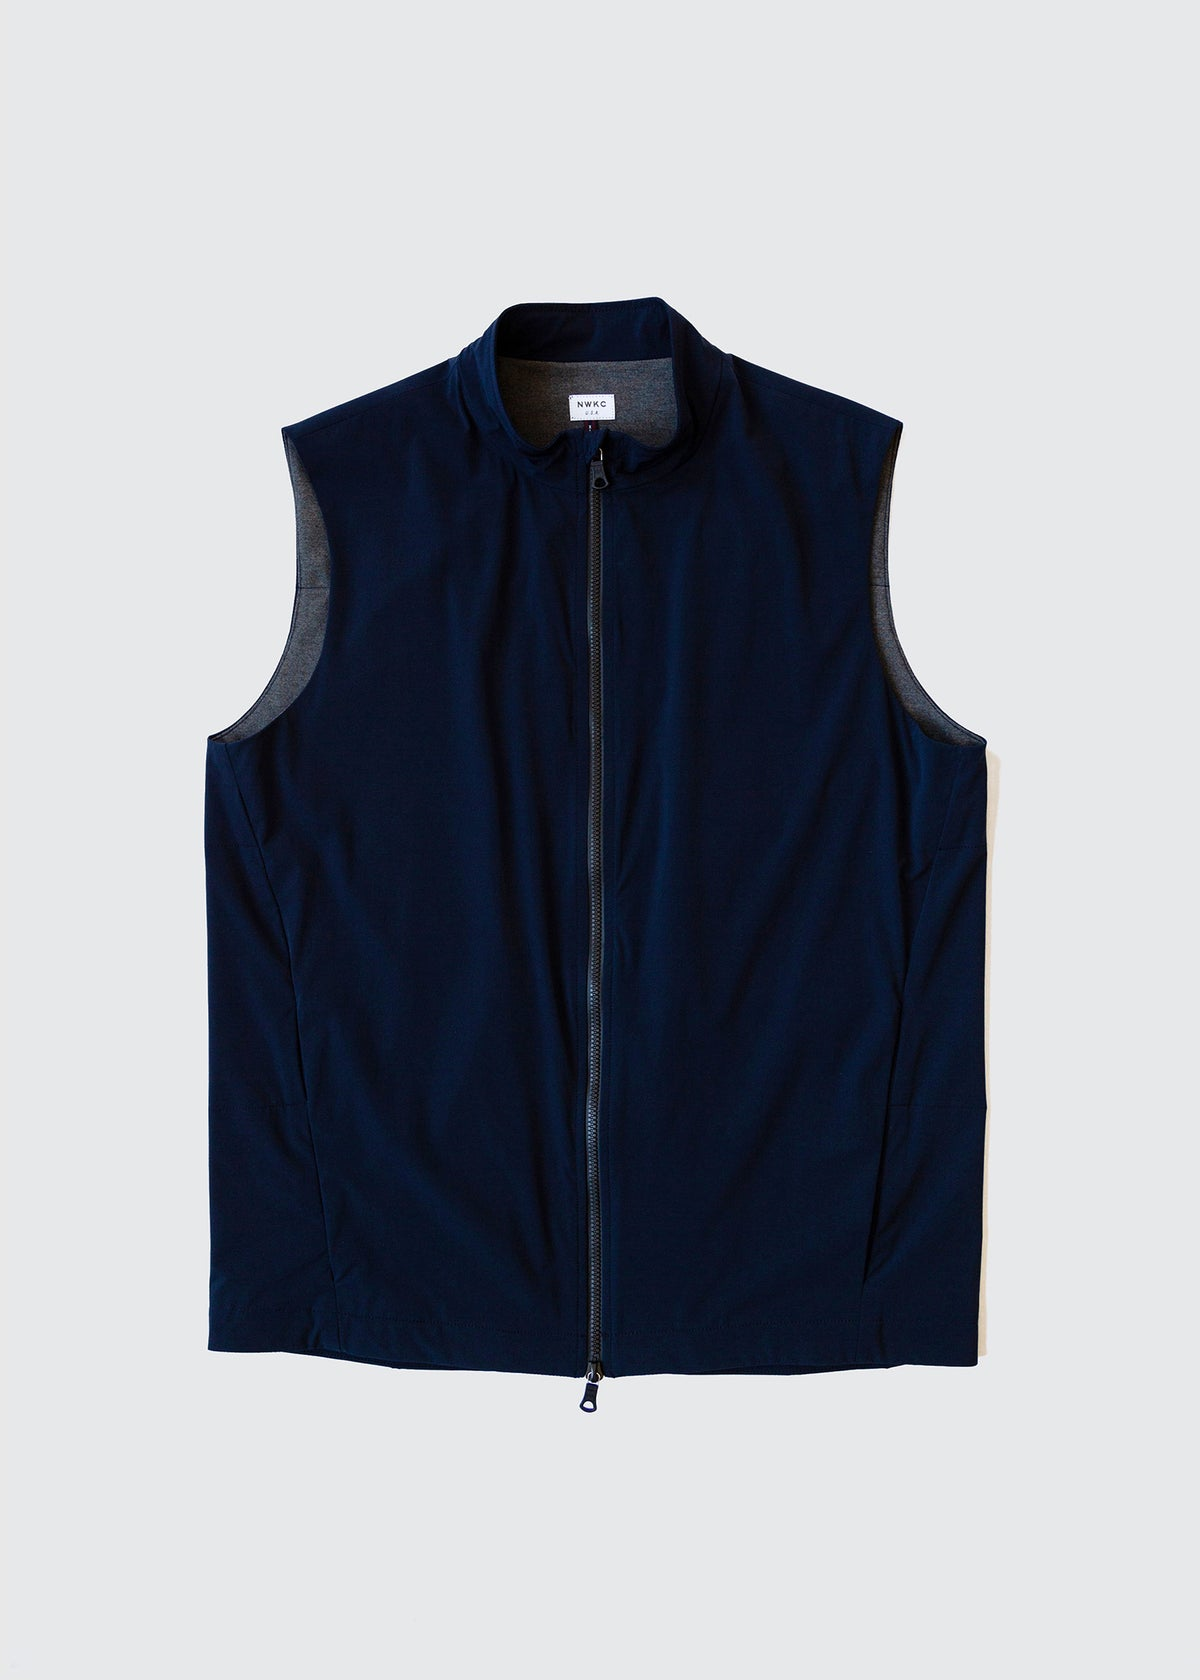 303 - QUILTED COLLAR VEST - NAVY - Wilson & Willy's - MPLS Neighbor Goods